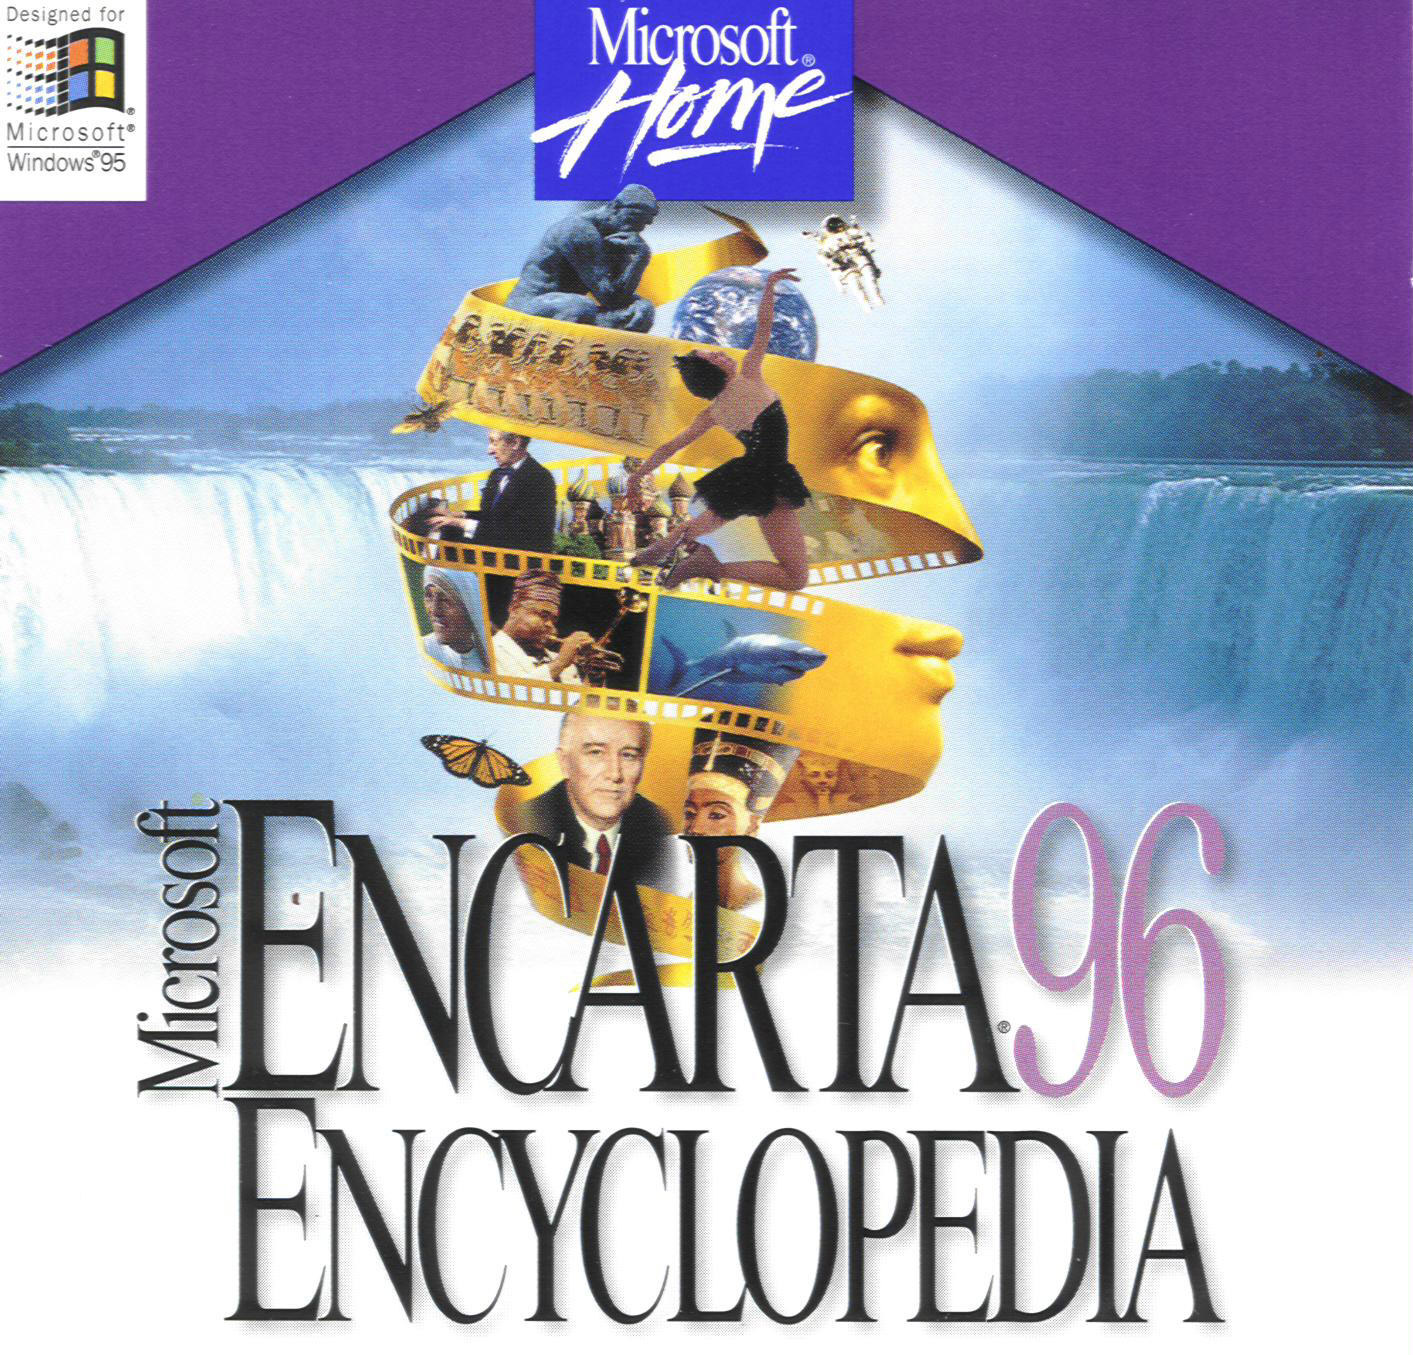 Microsoft Made Encarta Software To Push PC Multimedia